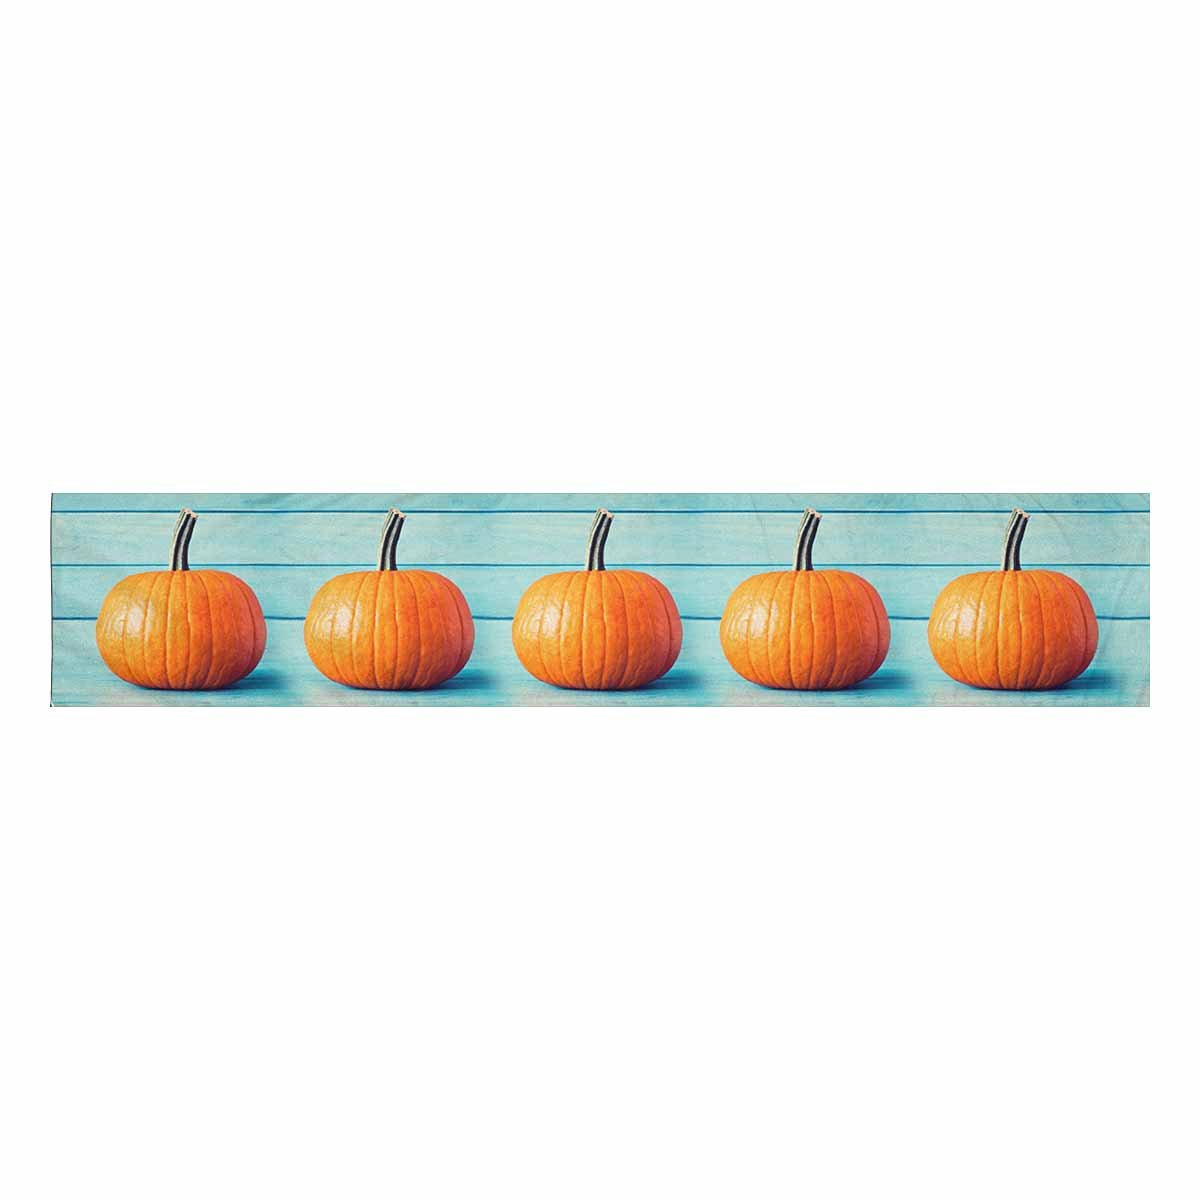 InterestPrint Halloween Decoration Pumpkin over Turquoise Colored Wood Table Runner Linen & Cotton Cloth Placemat Home Decor for Wedding Banquet Decoration 16 x 72 Inches by InterestPrint (Image #2)